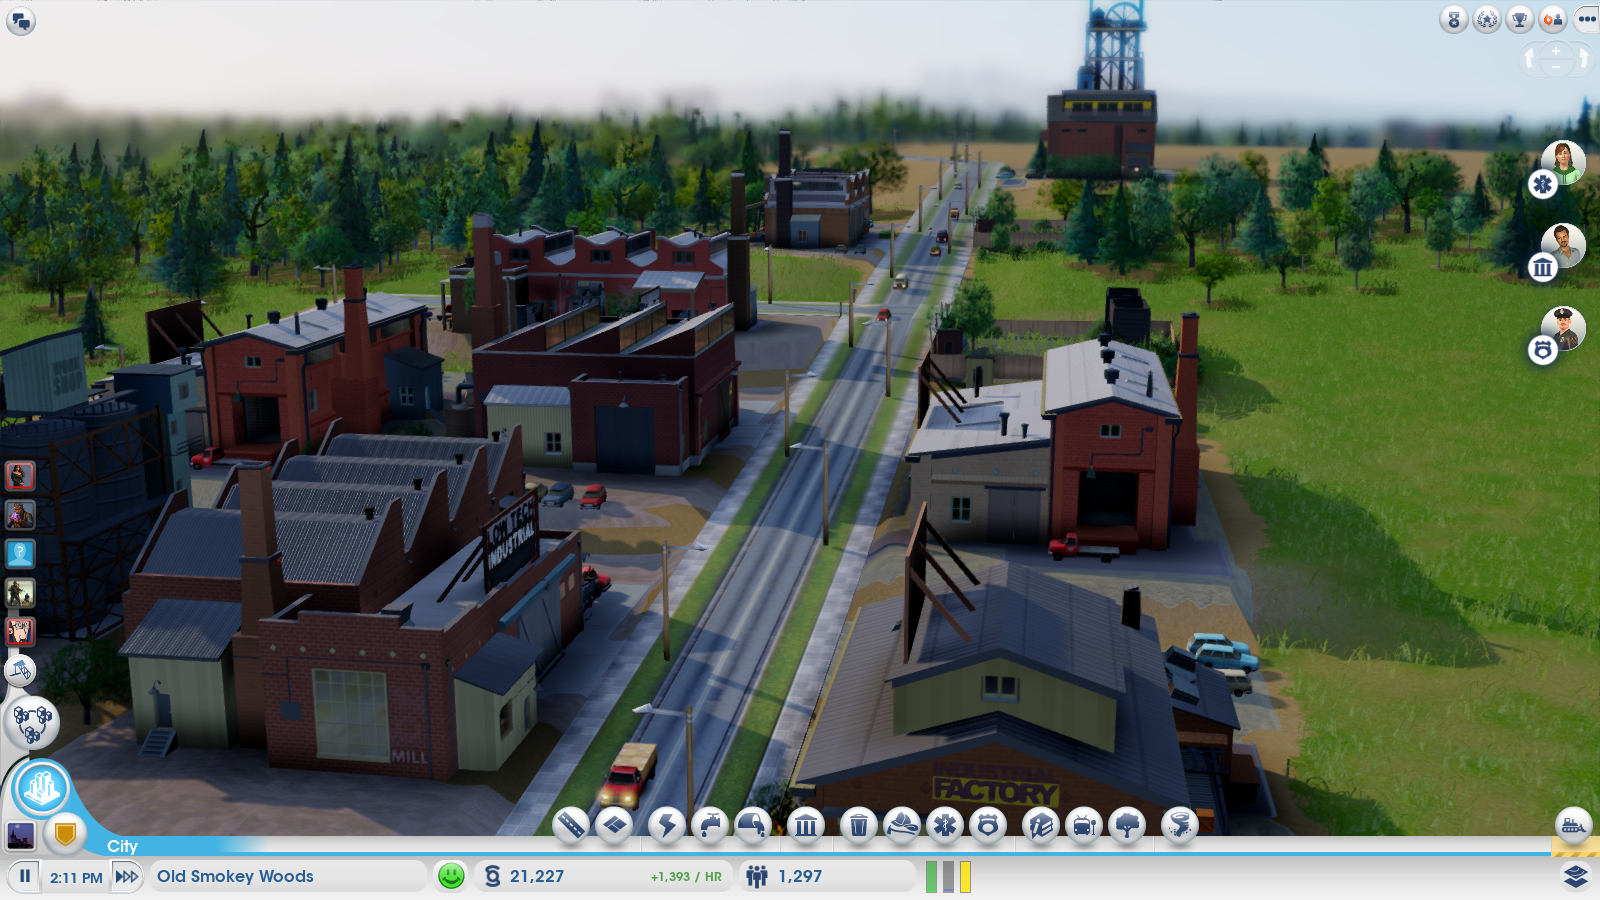 So there's this game I like called SimCity…